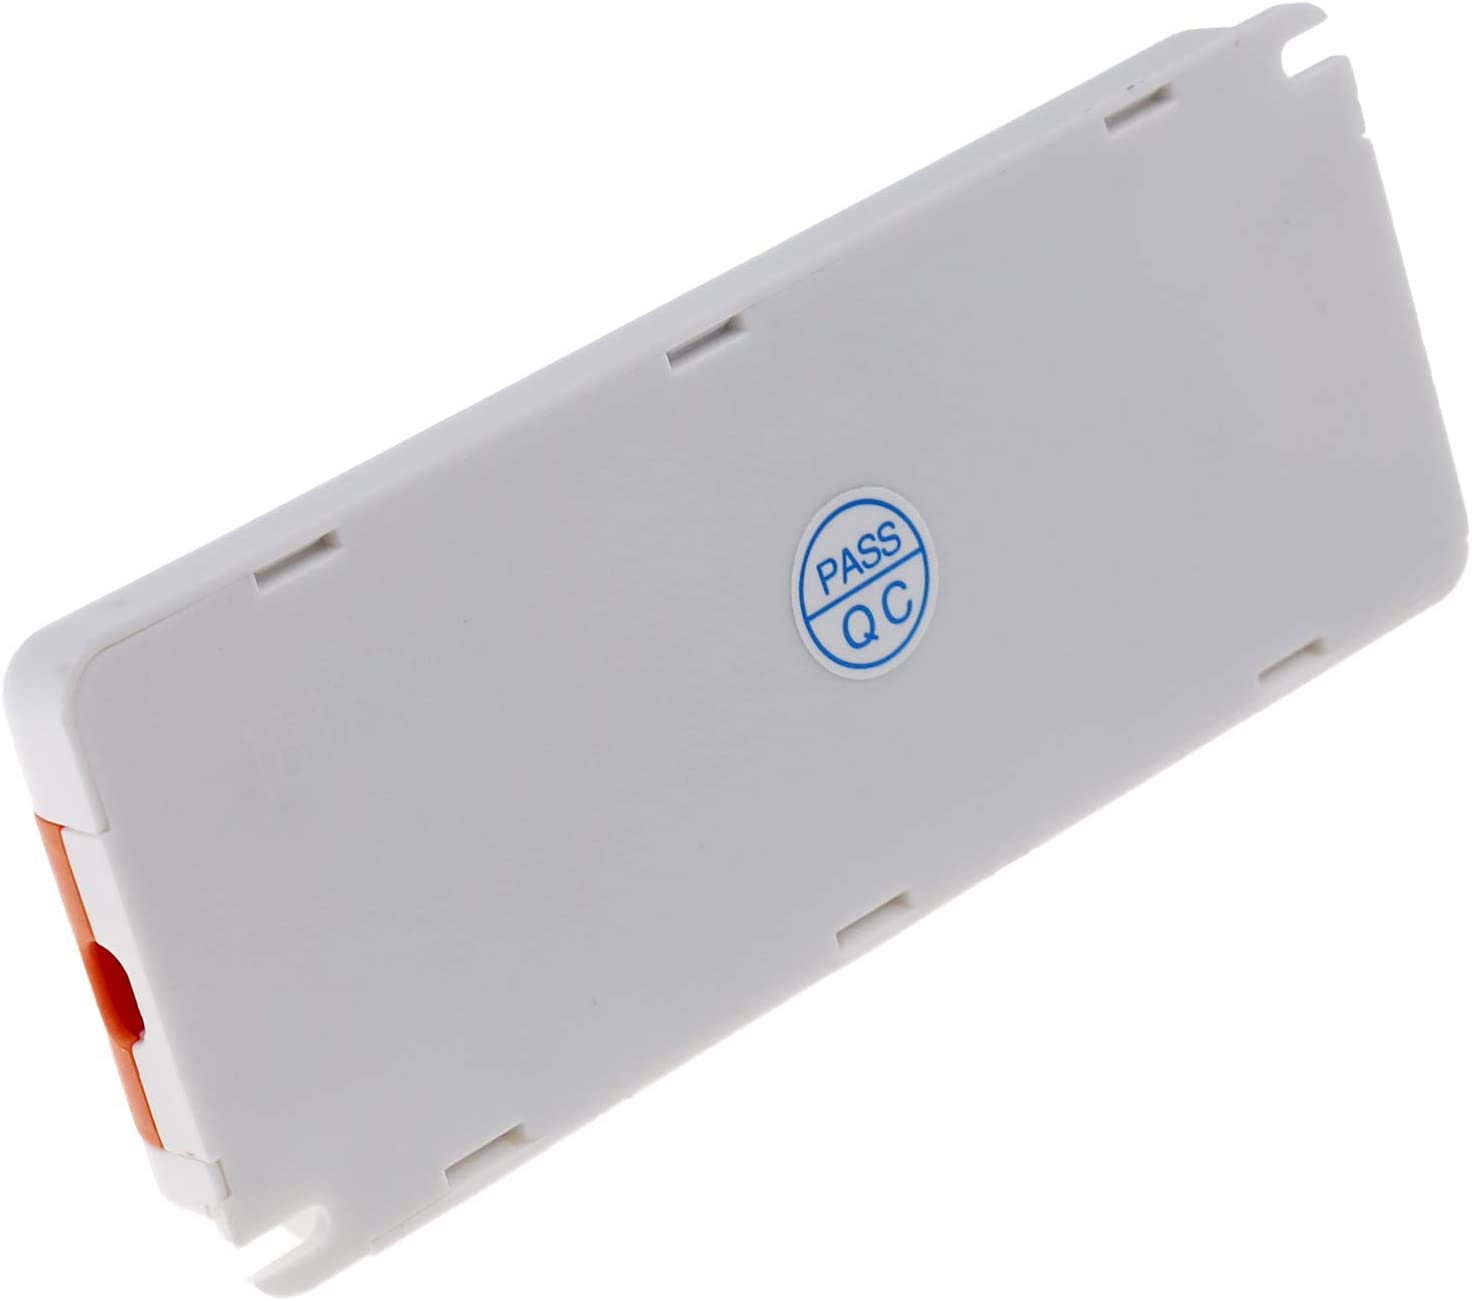 ENET LED Power Supply Driver Transformer 12V DC 20W